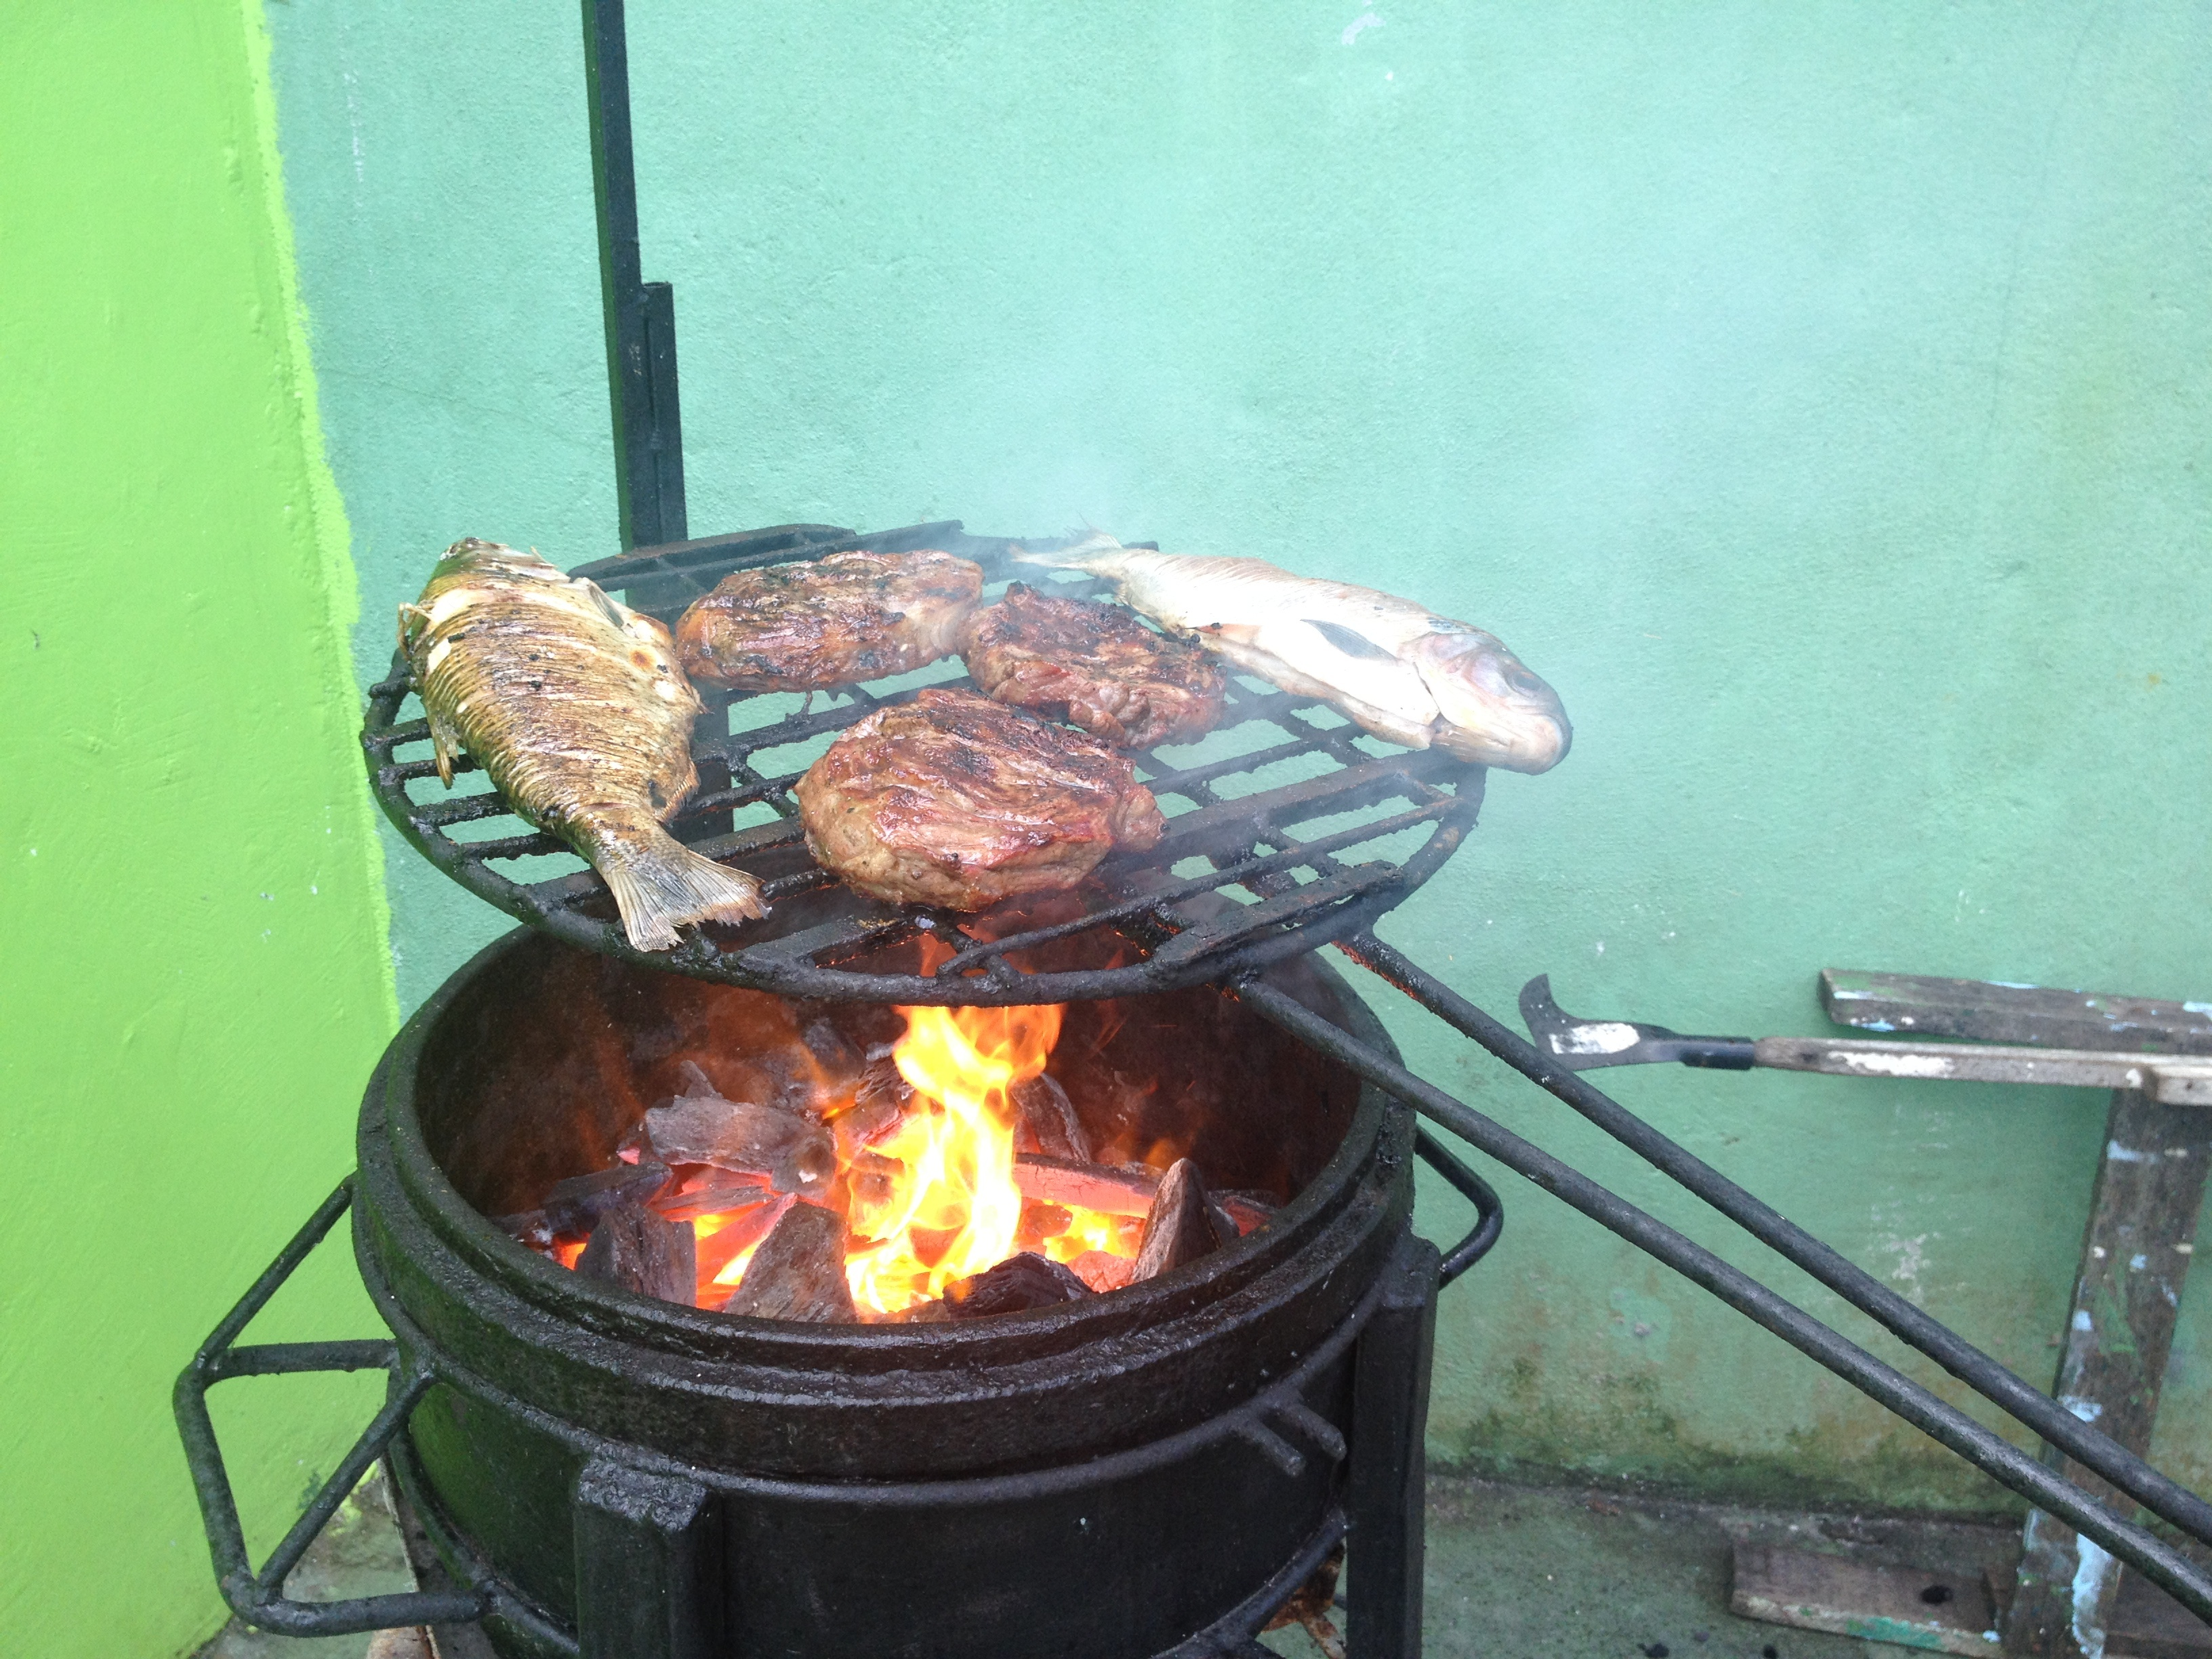 BBQing for one of our last times watching the games in Brazil